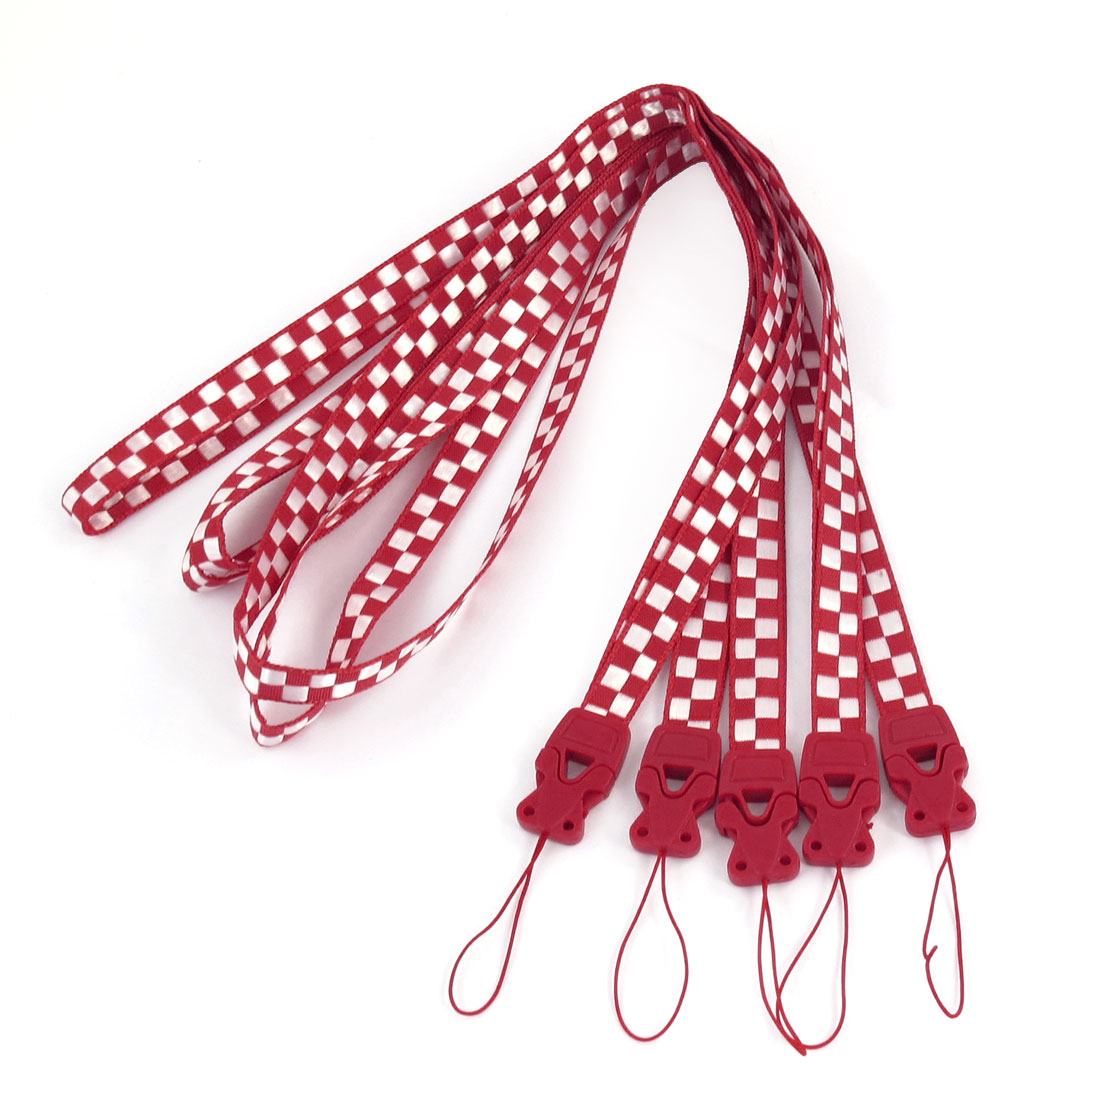 5 Pcs White Red Checkers Print Cell Phone Keys Holder Neck Strap Lanyard